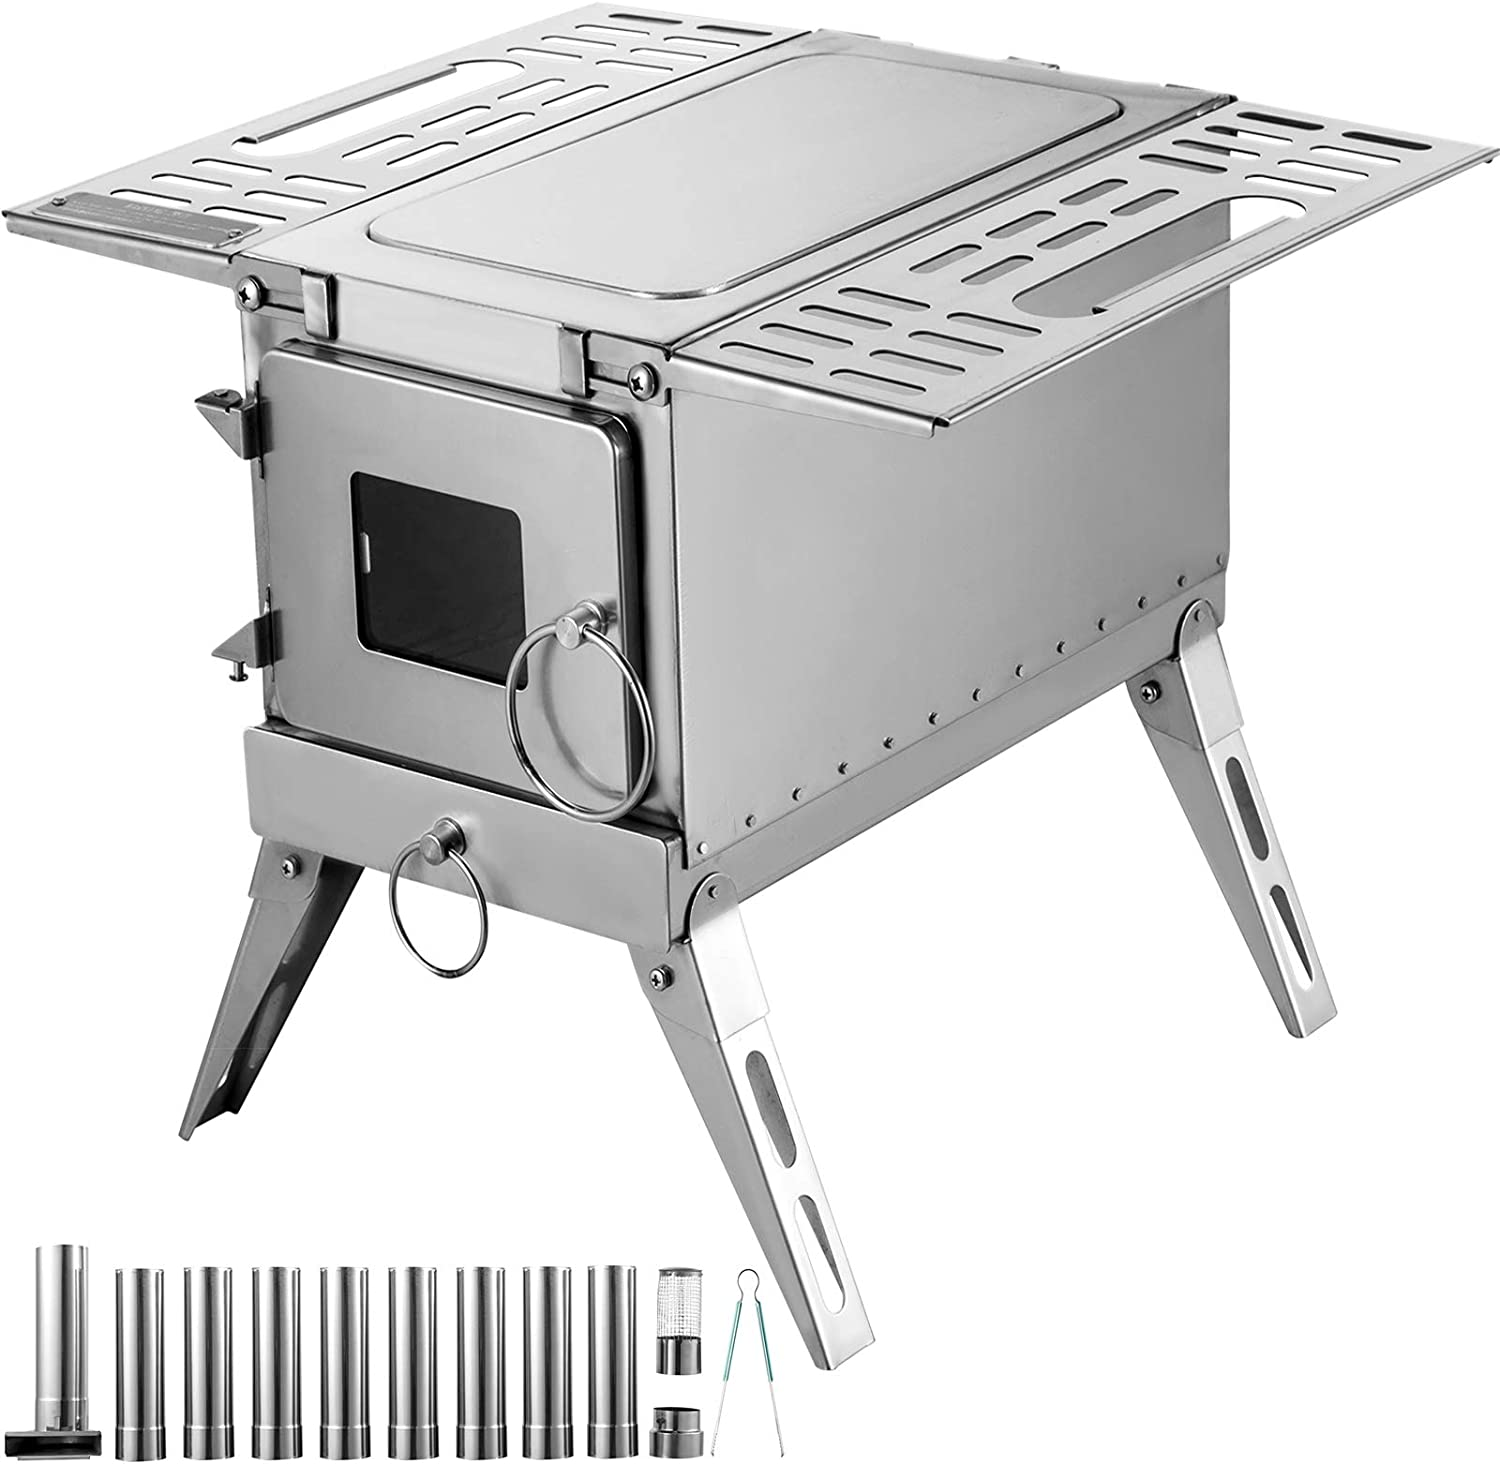 Happybuy Tent Wood Stove 18.3x15x14.17 inch, Camping Wood Stove 304 Stainless Steel with Folding Pipe, Portable Wood Stove 90.6 inch Total Height for Camping, Tent Heating, Hunting, Outdoor Cooking